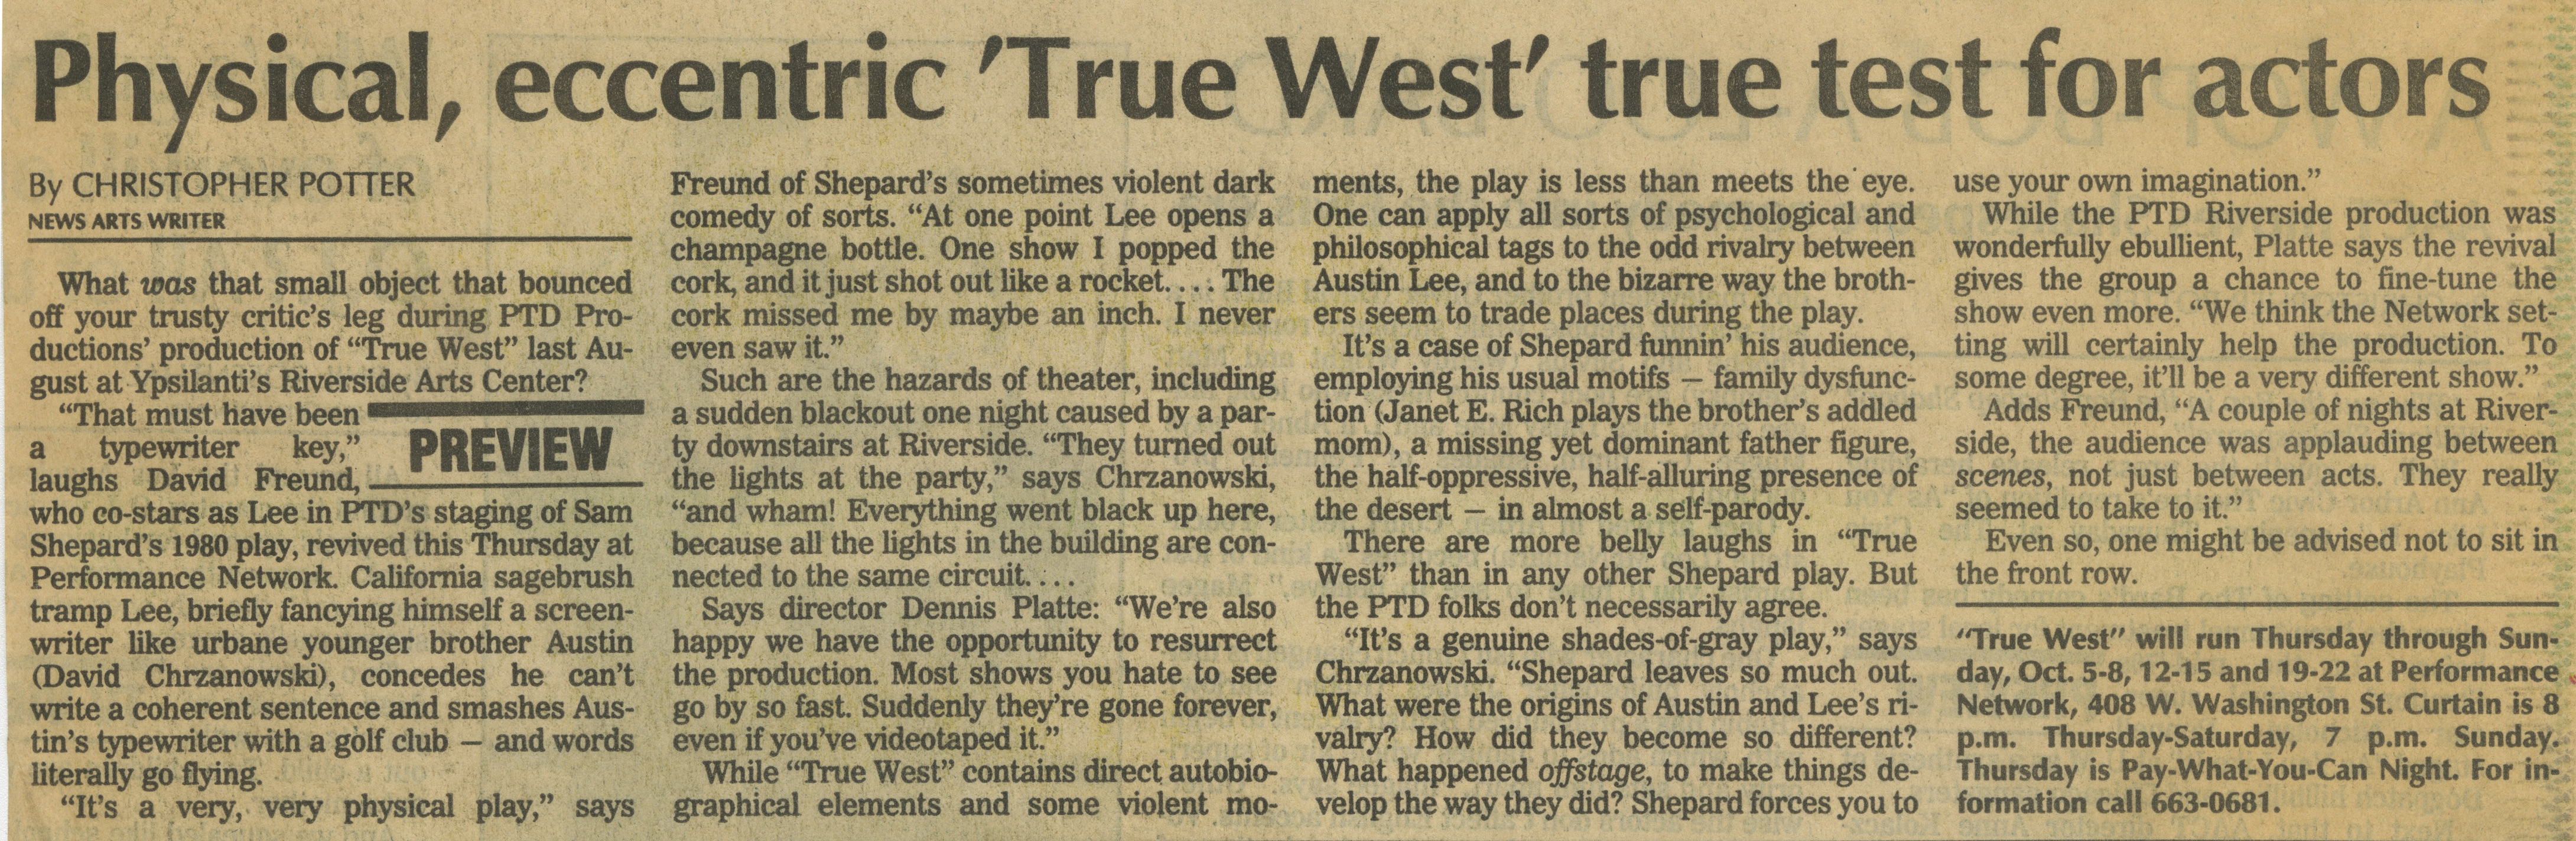 Physical, eccentric 'True West' true test for actors image